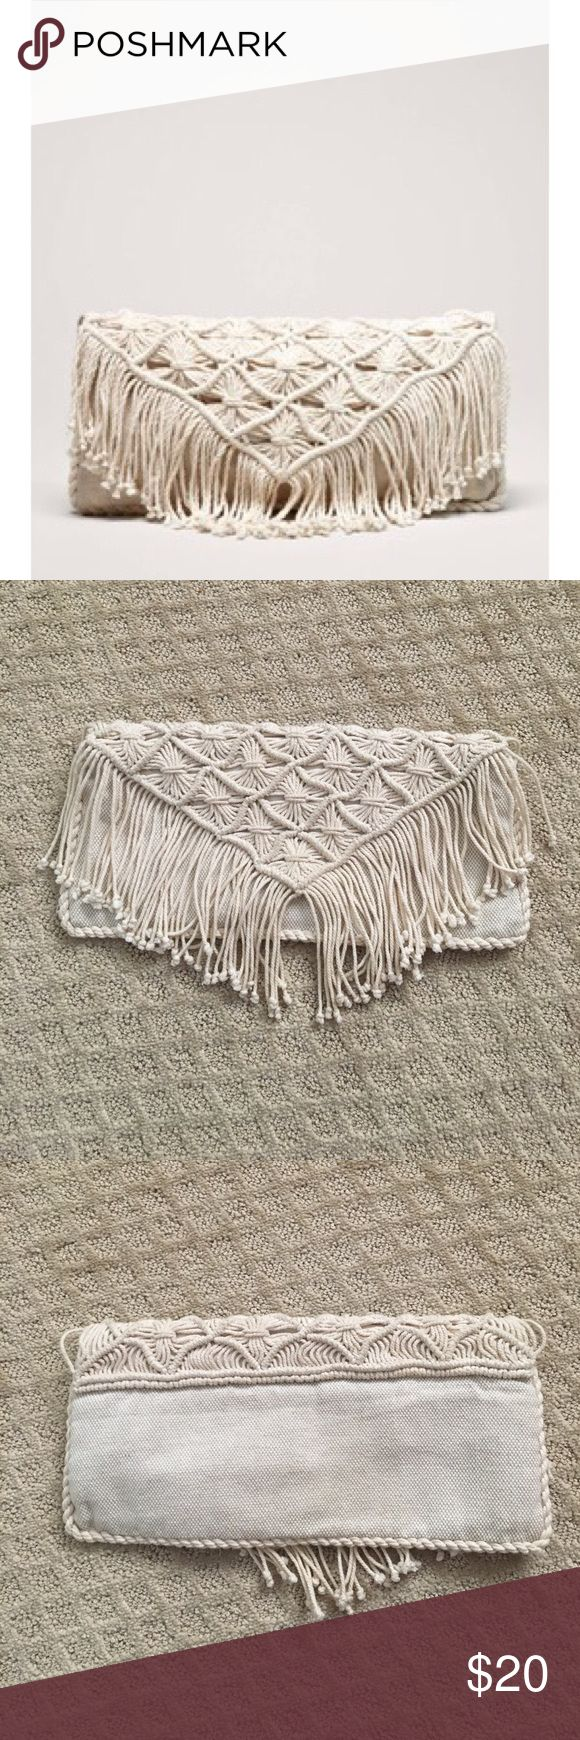 American Eagle Fringe Clutch American Eagle Fringe Clutch. So cute with jeans! Little stain on inside (pictured) American Eagle Outfitters Bags Clutches & Wristlets